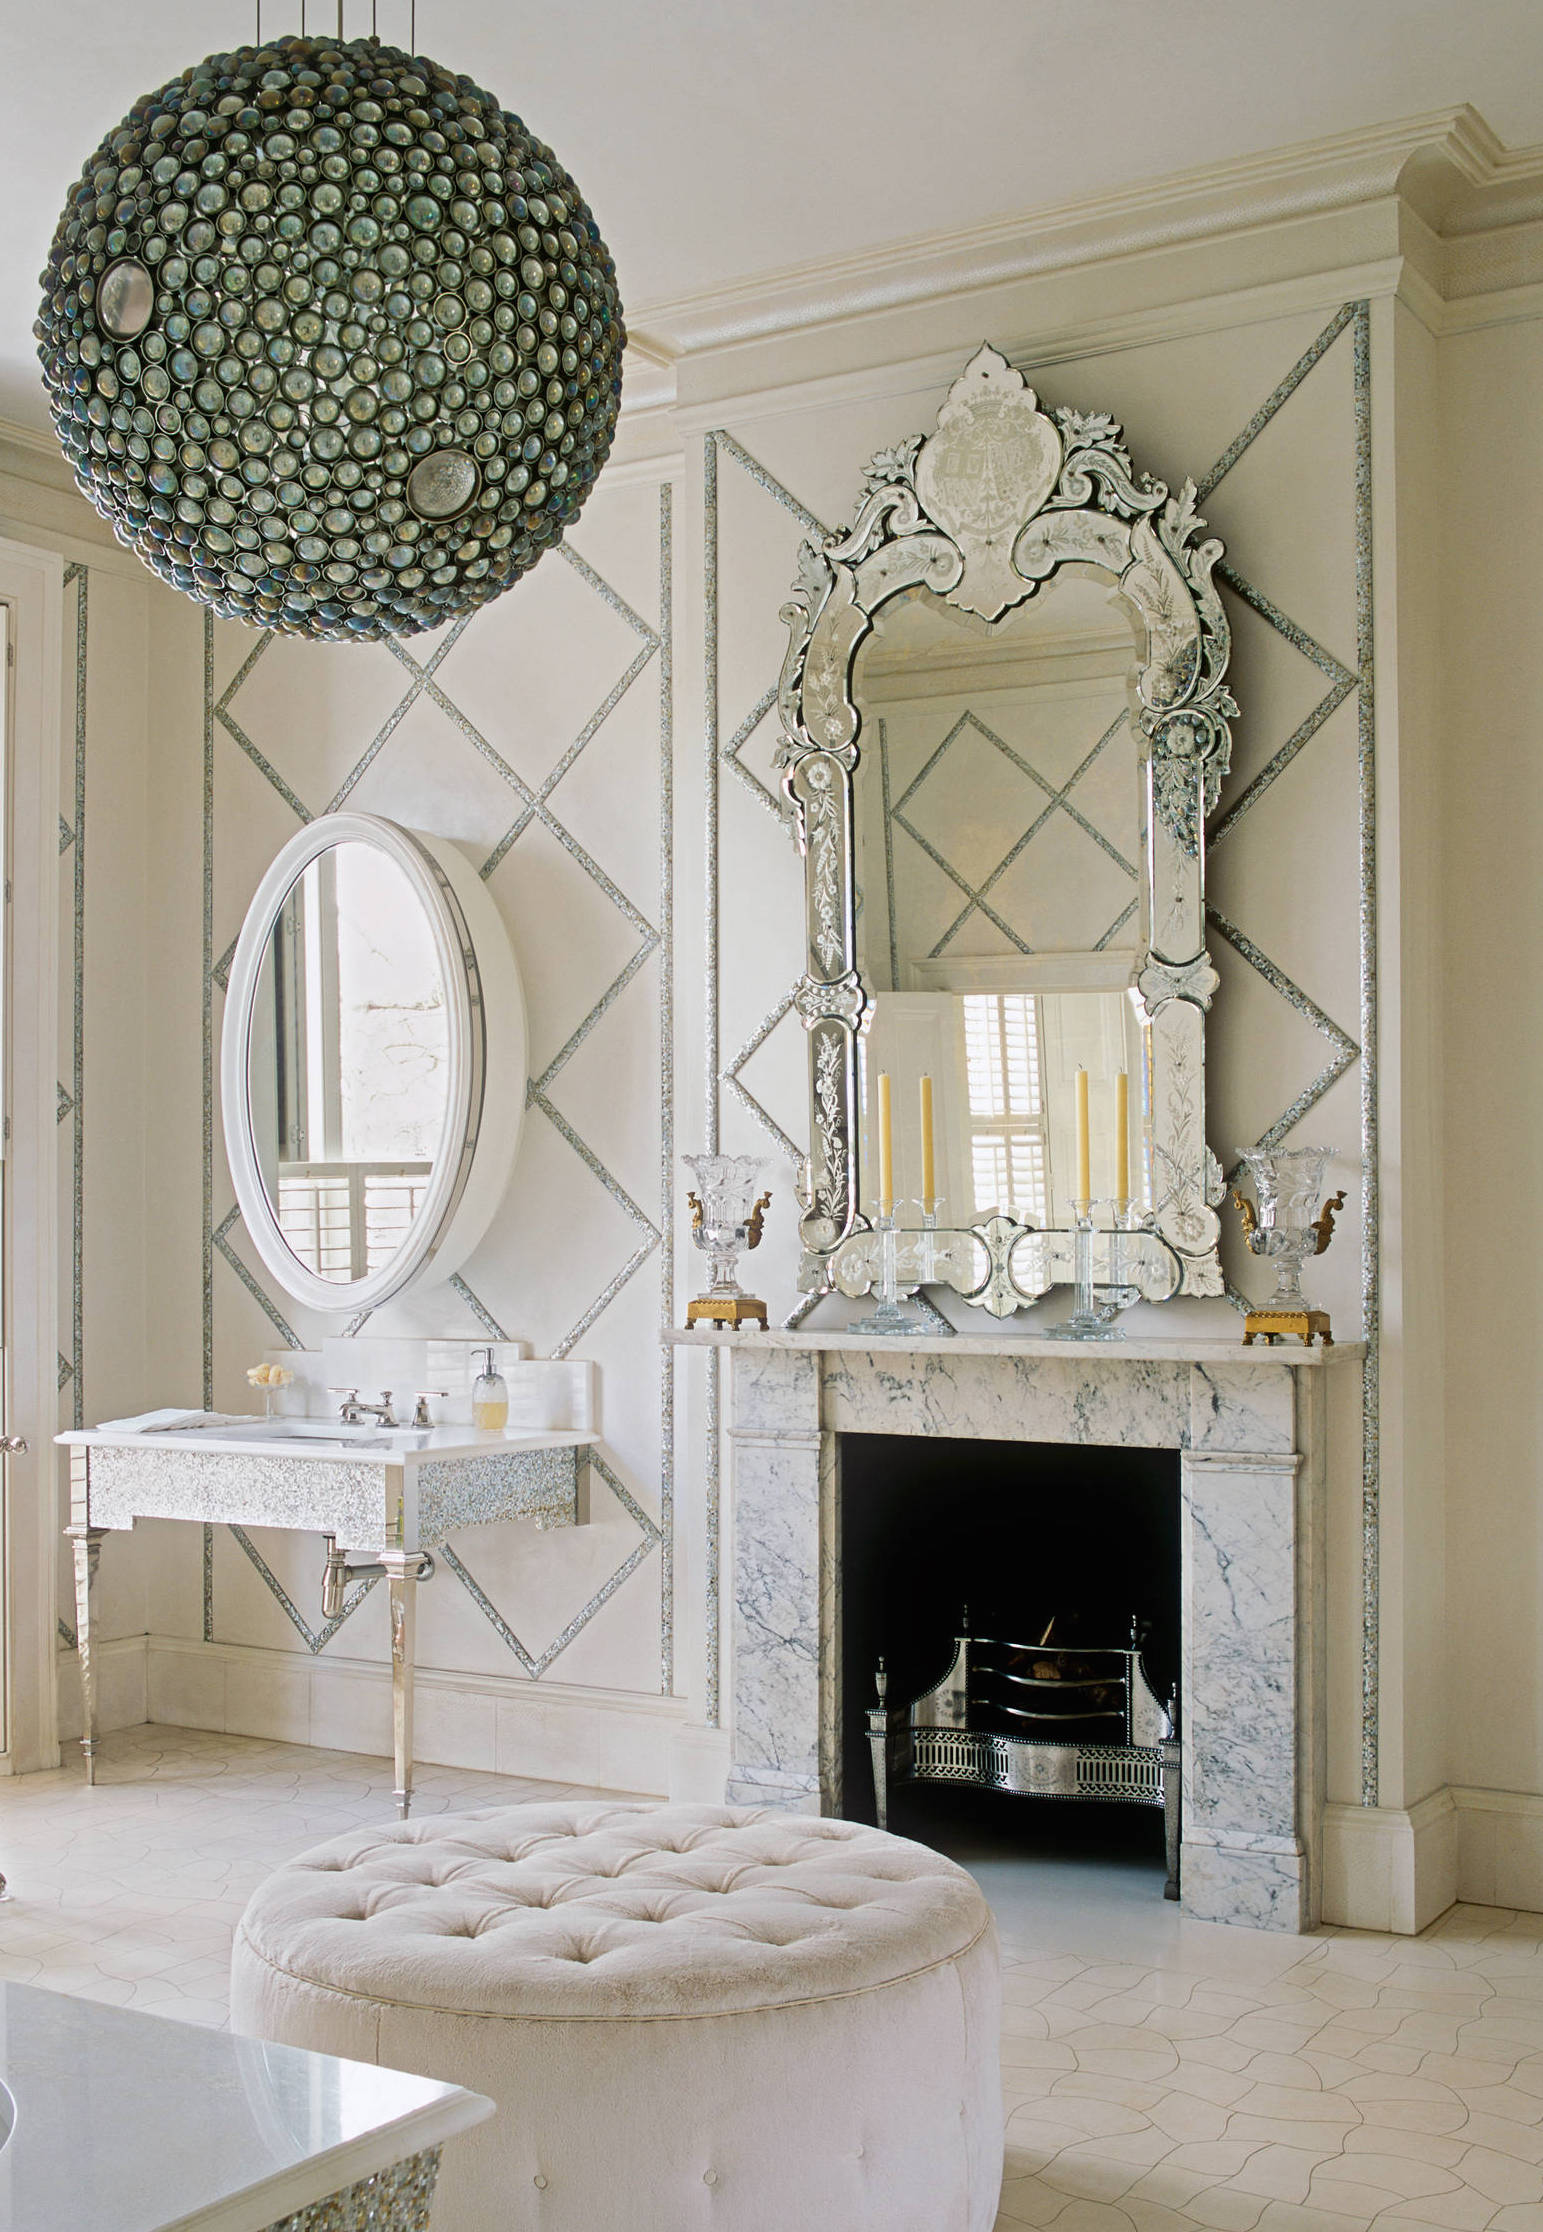 London Bathroom Venetian Mirror via Alidad Ltd & Studio Alidad